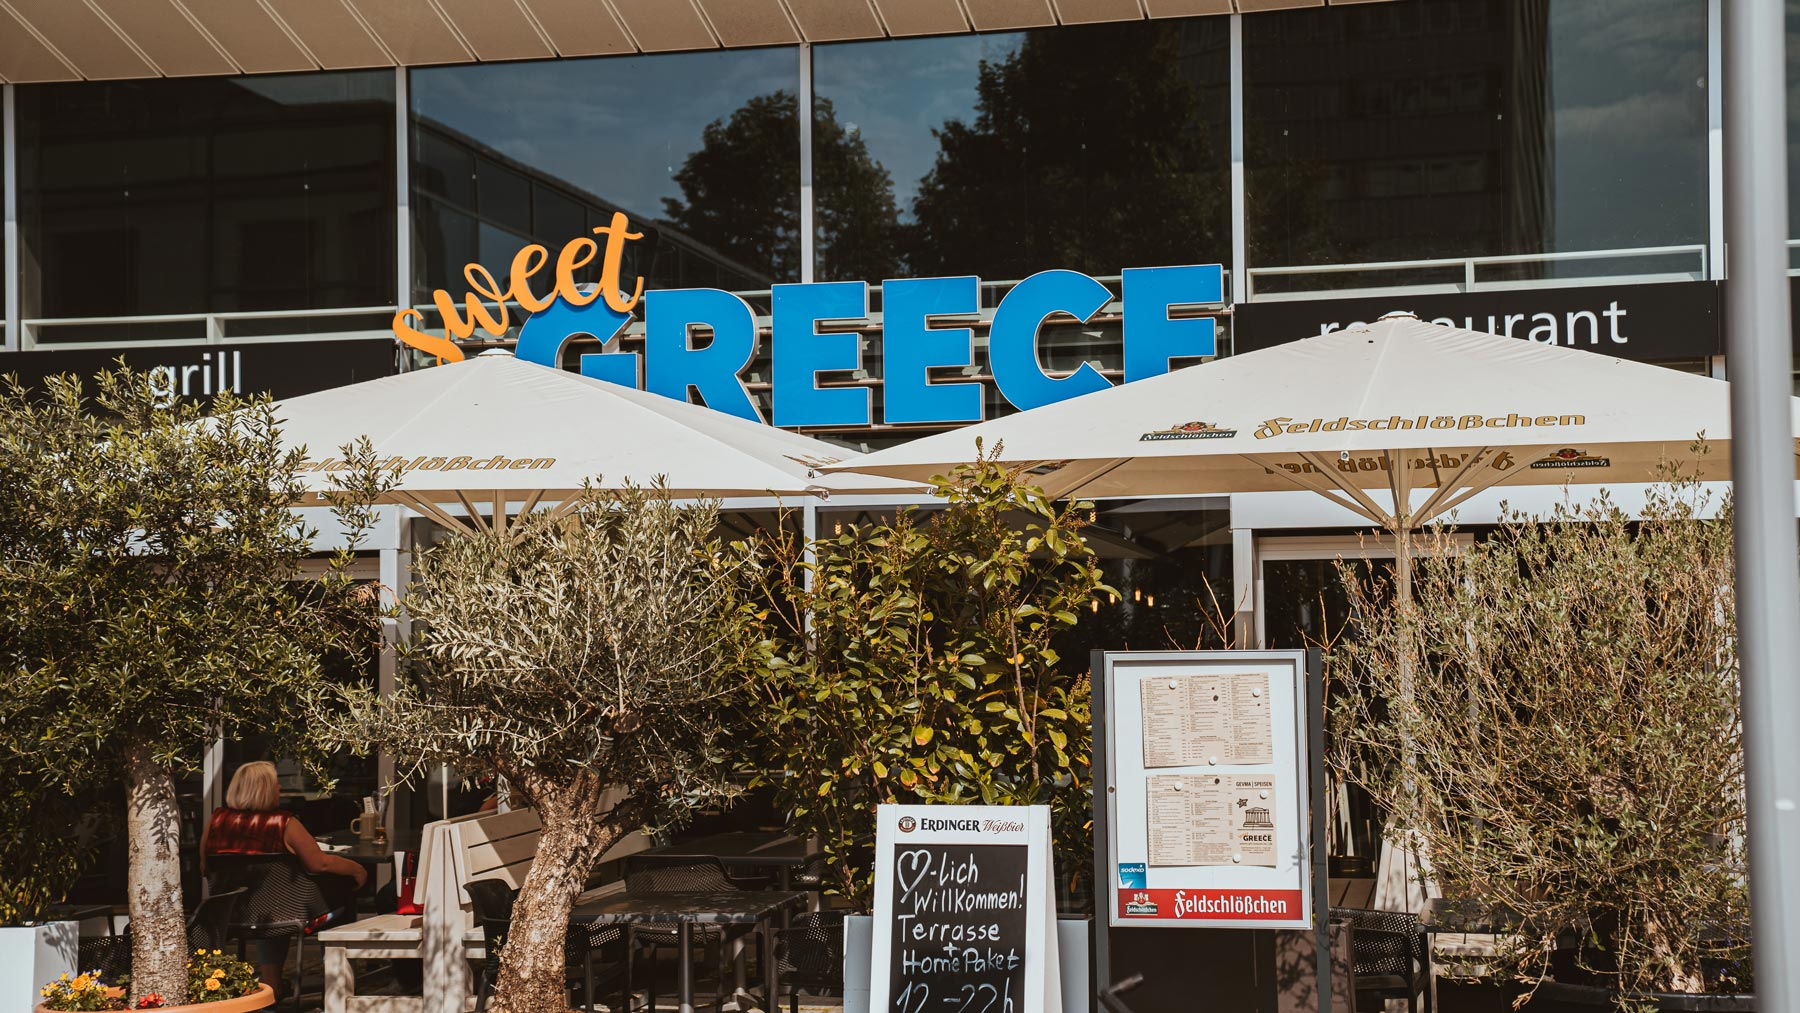 sweet GREECE - with home pick-up service